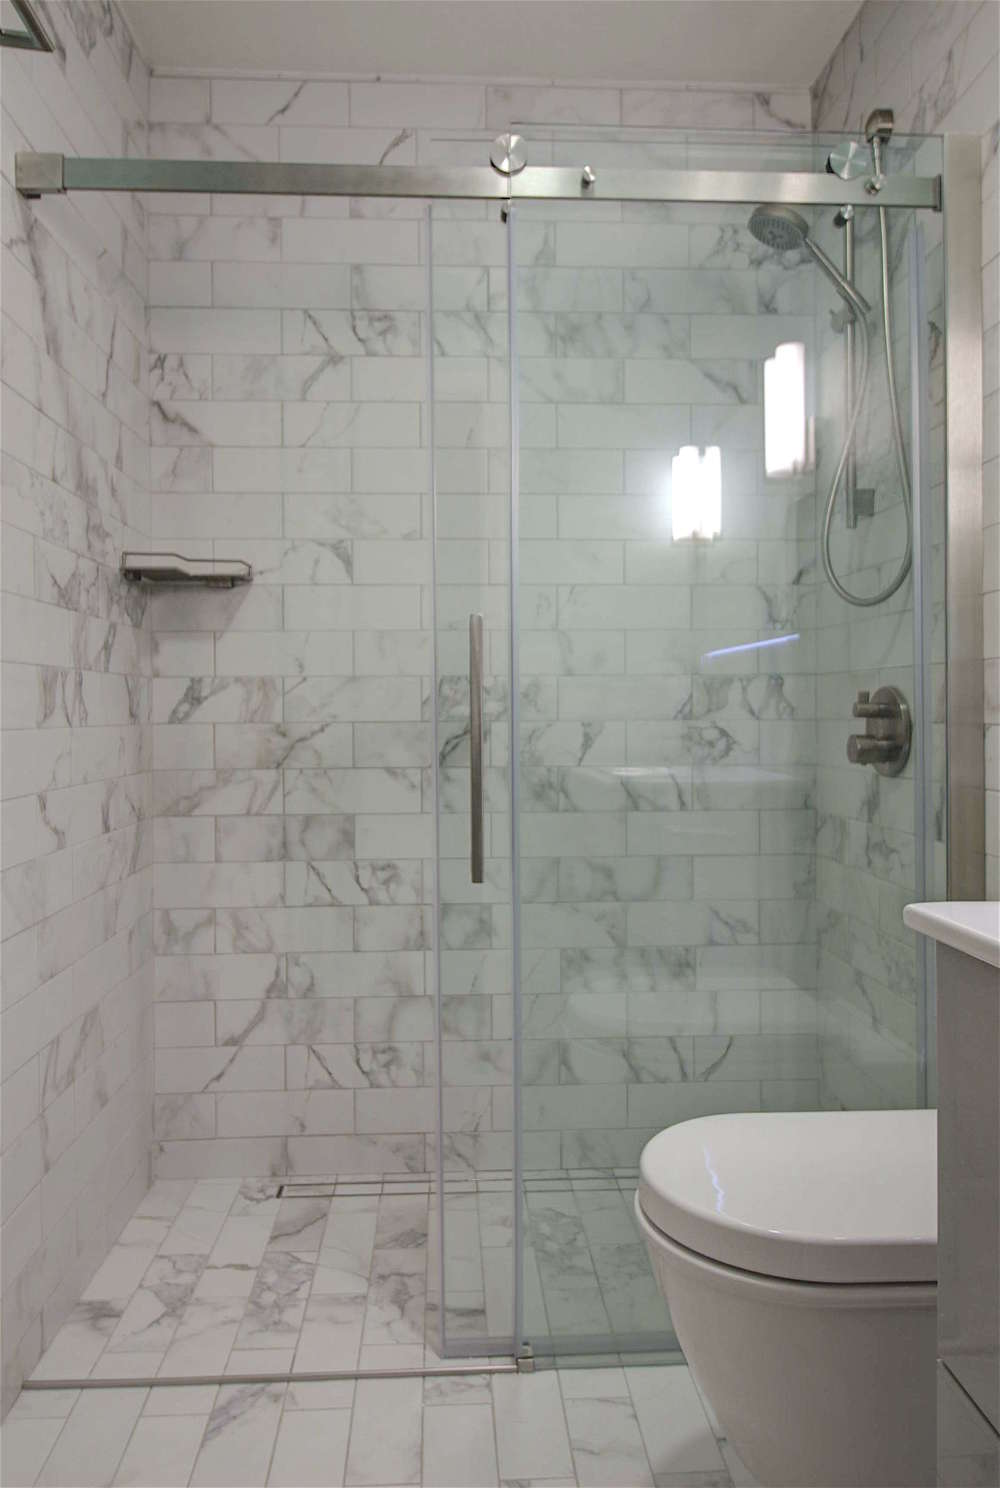 Shower_HDR_Edit.jpeg